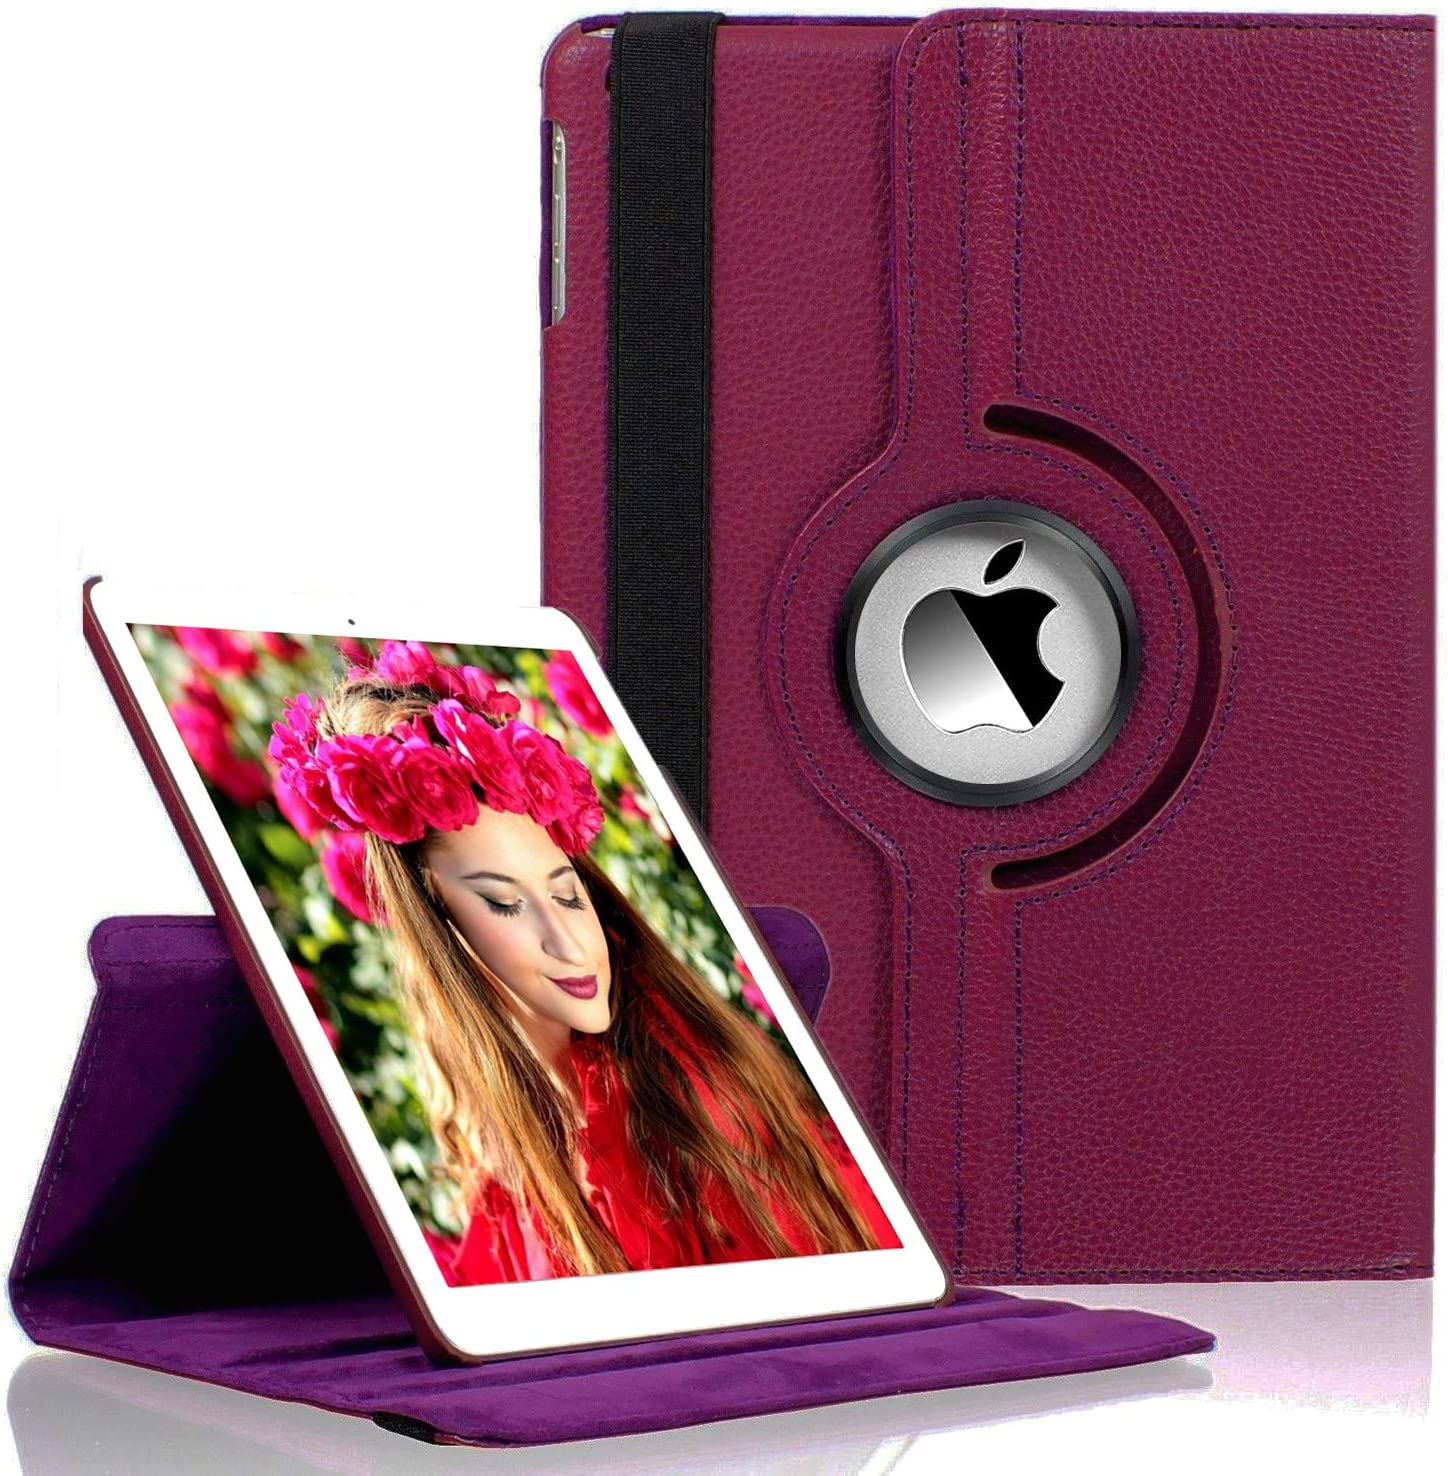 LayYun New iPad 10.2 Case Fit iPad 10.2 (2019) 7th Generation - 360 Degree Rotating iPad 7th Generation Case Cover with Auto Wake/Sleep Compatible with Apple iPad 10.2 Inch 2019 (Purple)